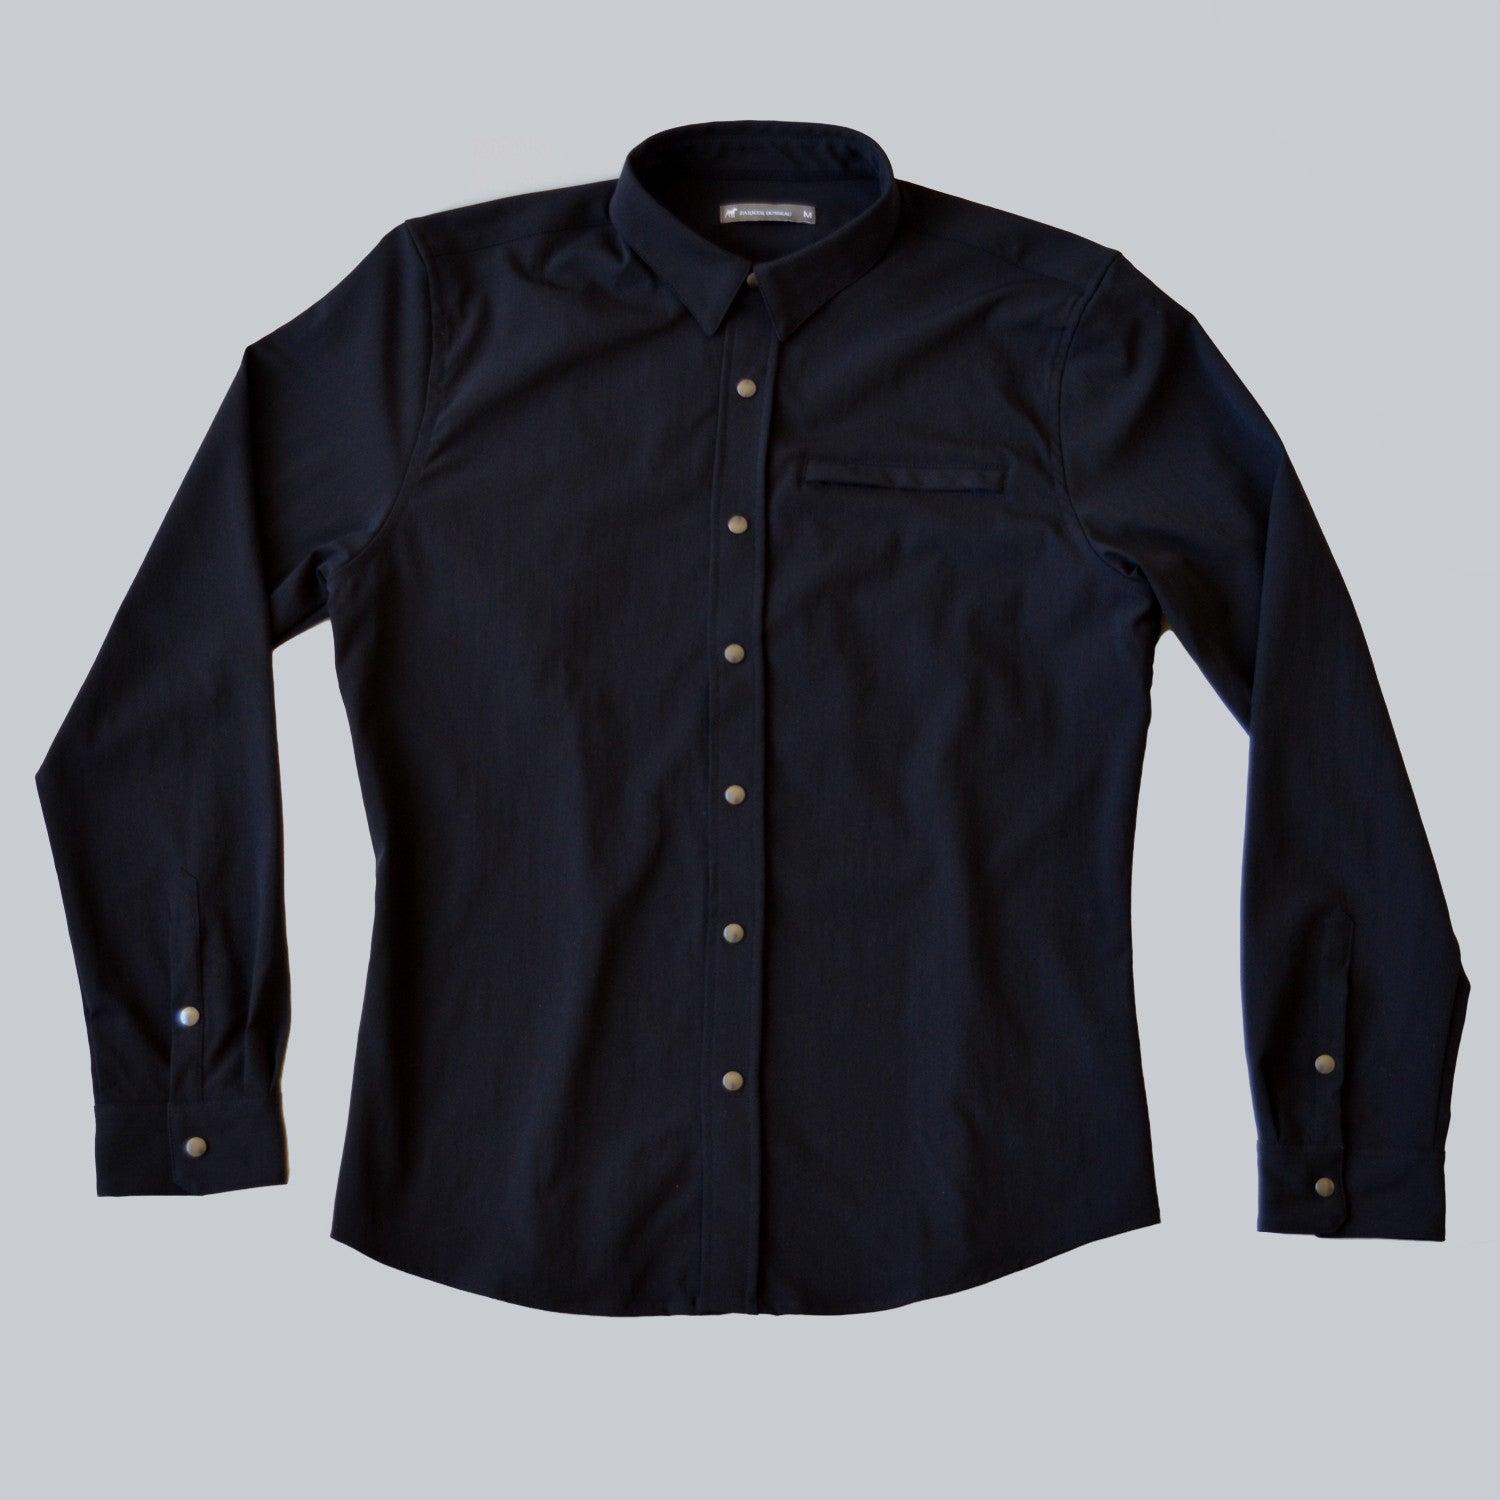 Seadrift 3XDRY® Water Repellent Overshirt Overshirt- Parker Dusseau : Functional Menswear Essentials for the Always Ready Lifestyle. Based in San Francisco, California